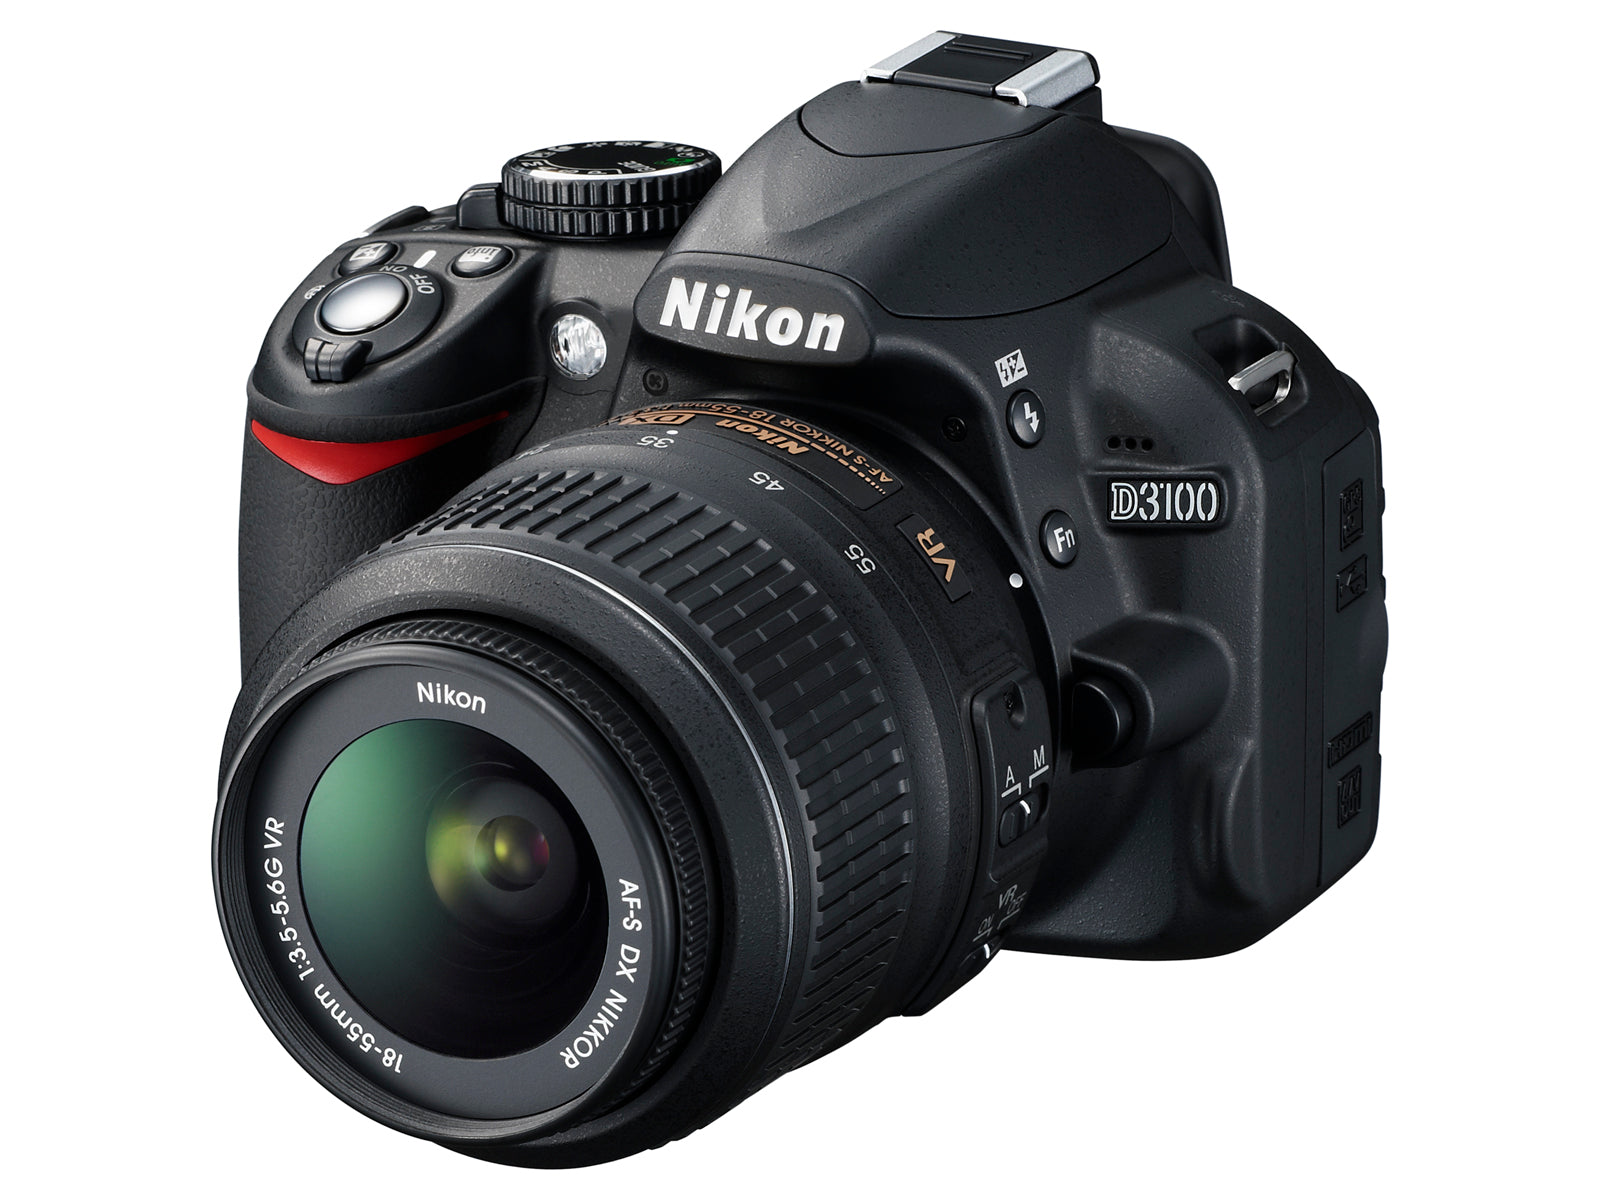 Nikon D3100 Professional Camera - Foreign Used - Dool-X IT Republic